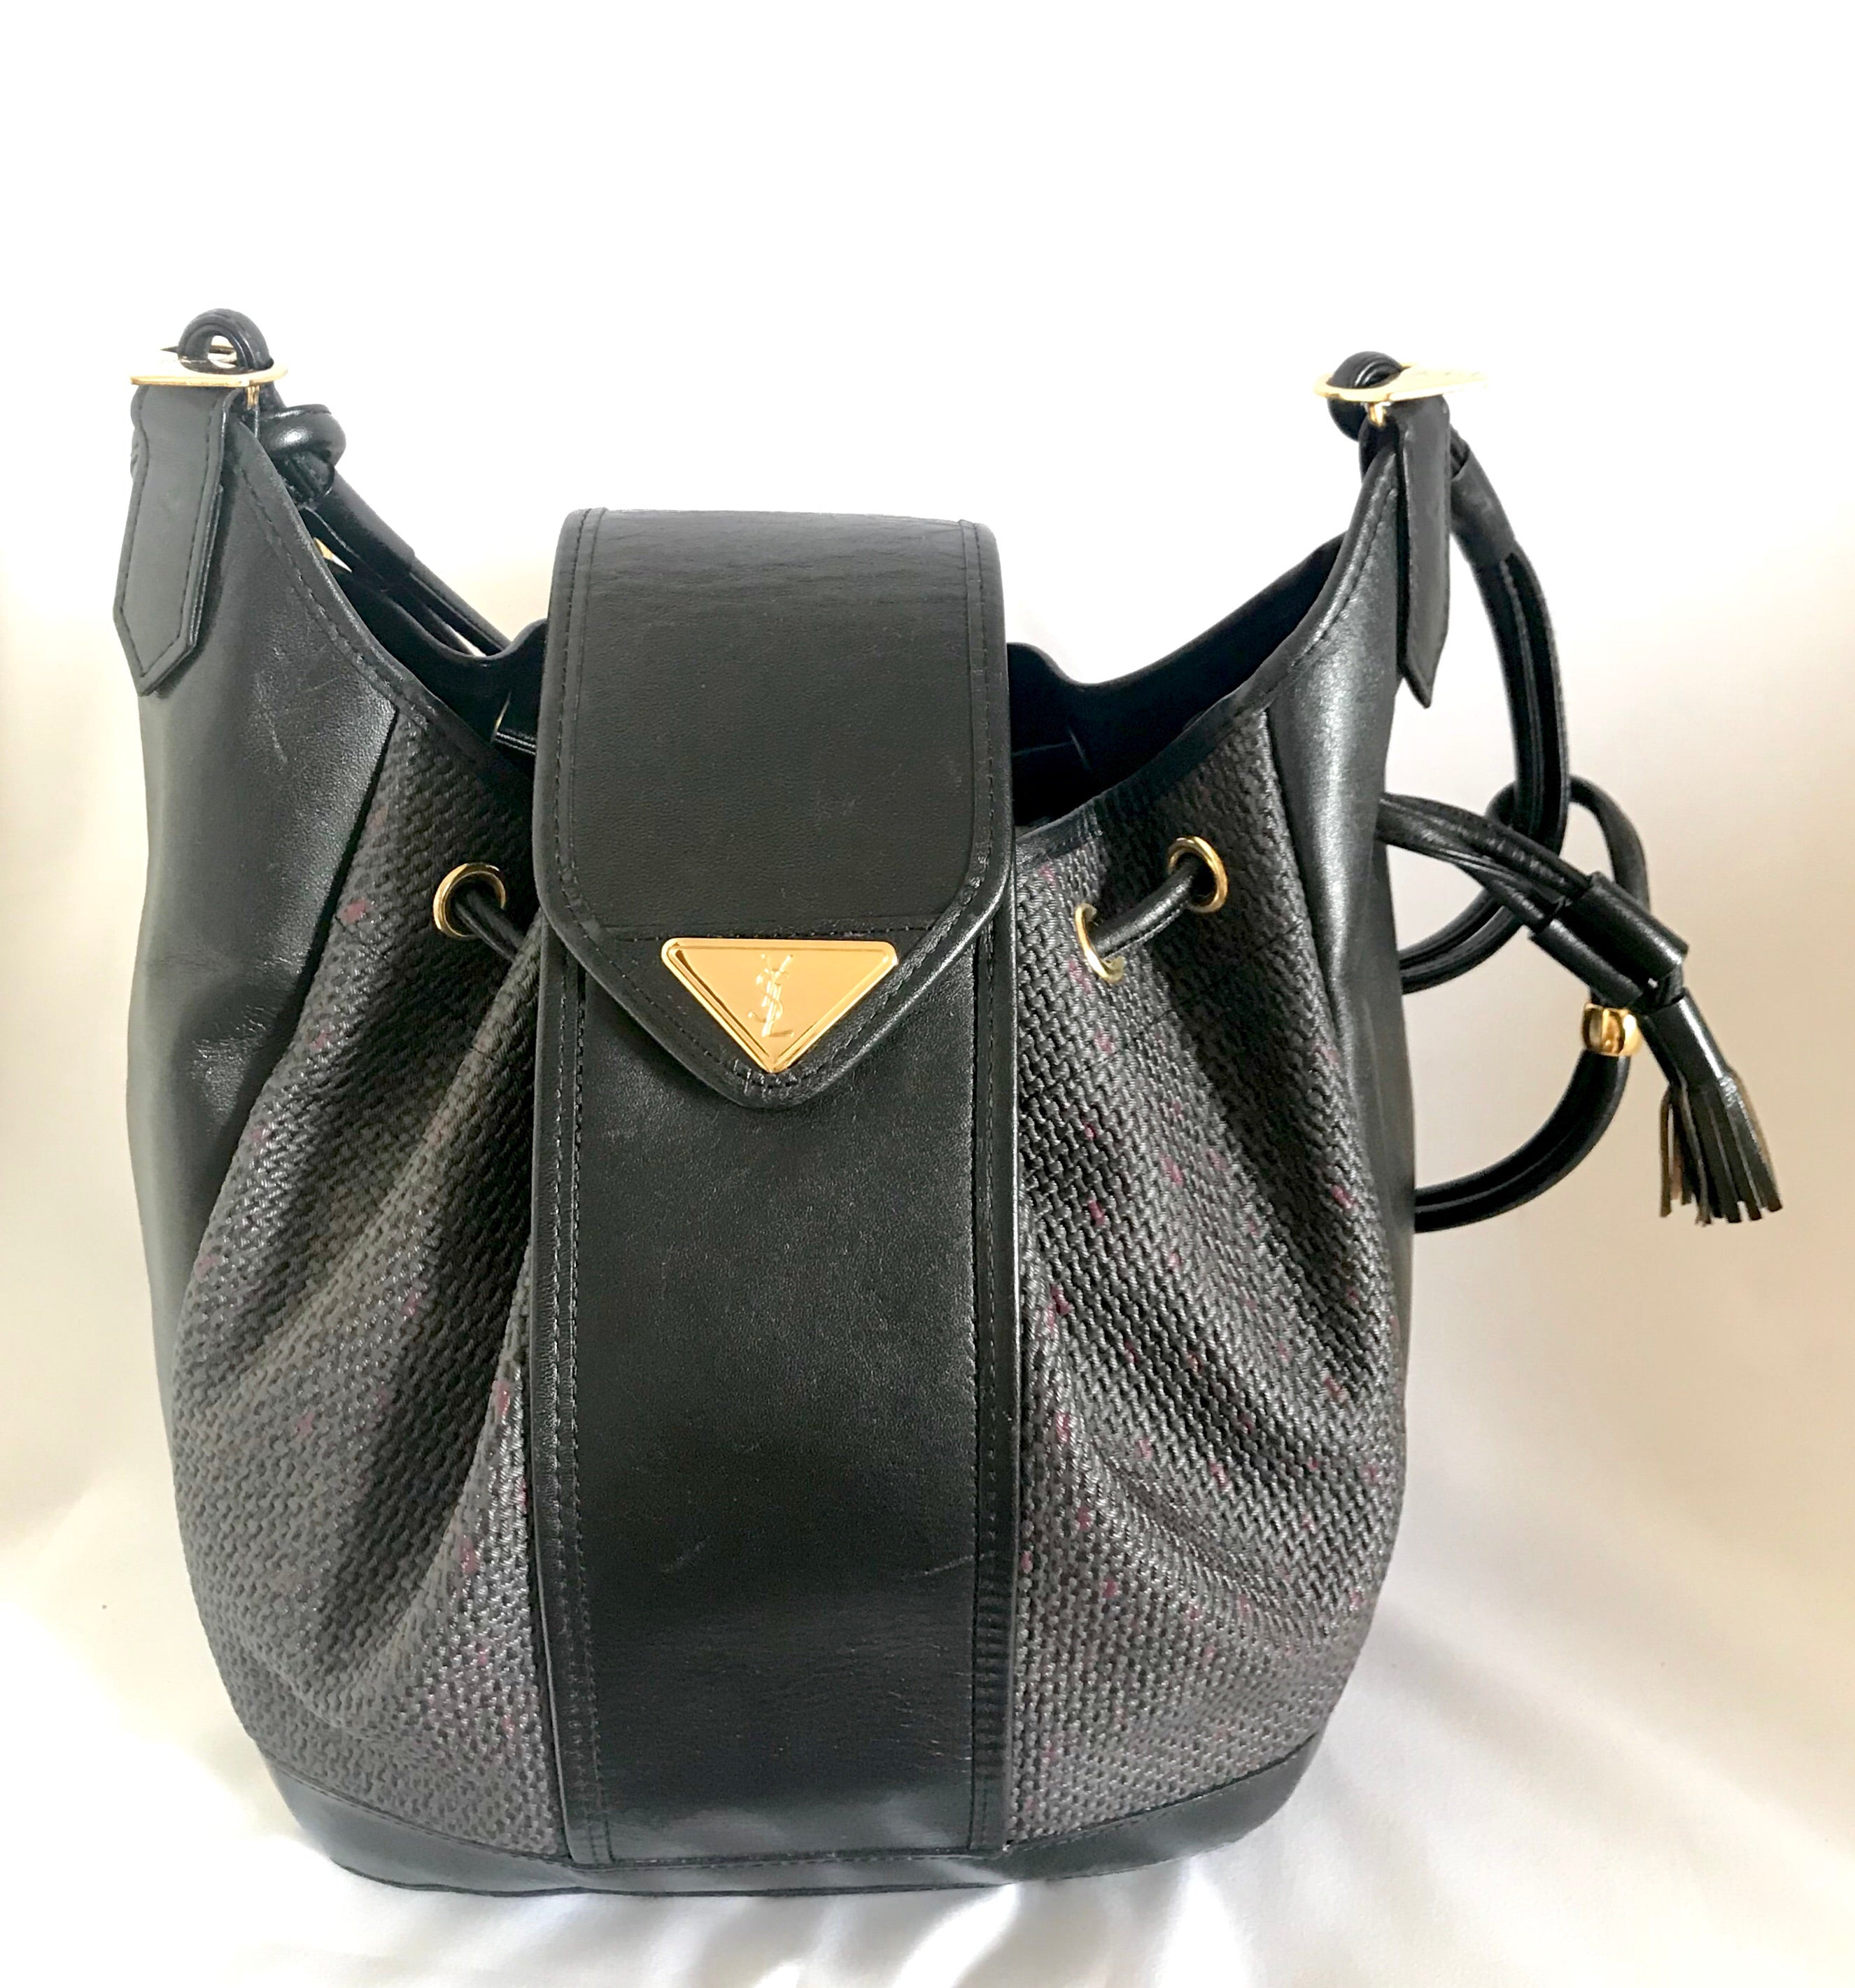 e0797ac87e8d Vintage Yves Saint Laurent black and purple hobo bucket shoulder bag with  leather trimmings and golden